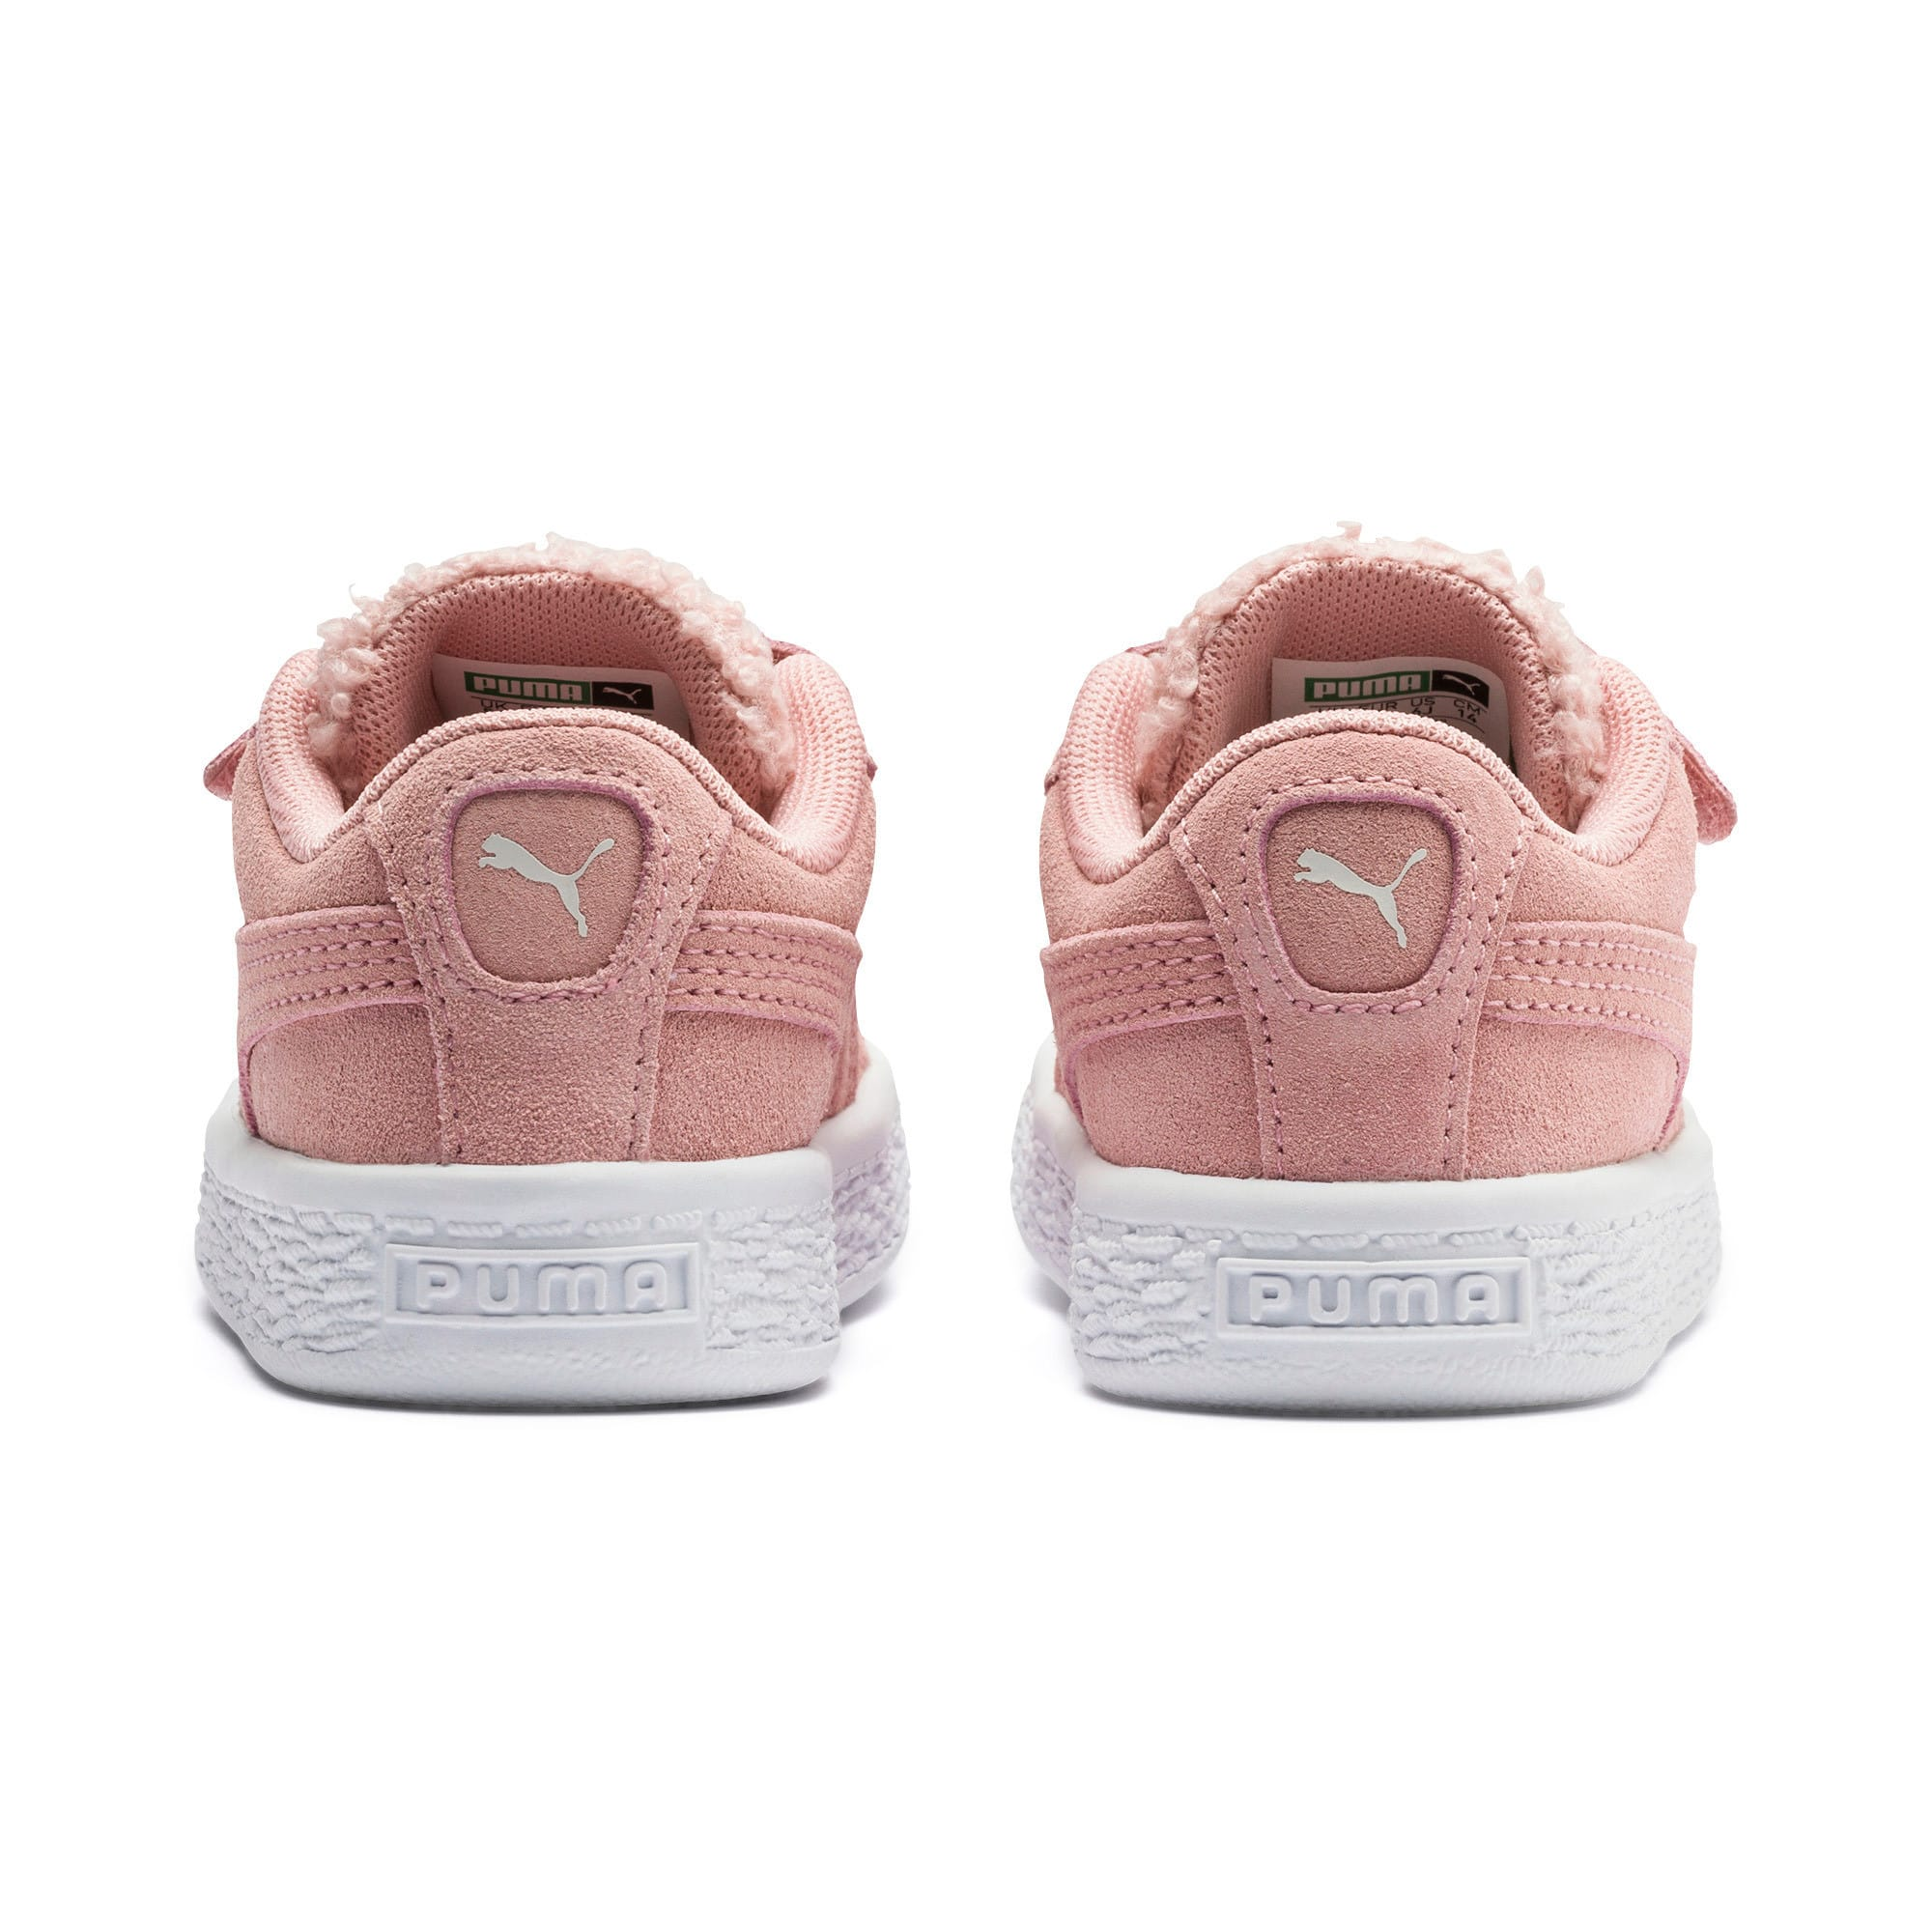 Thumbnail 3 of Suede Winter Monster Babies' Trainers, Bridal Rose-Mocha Mousse, medium